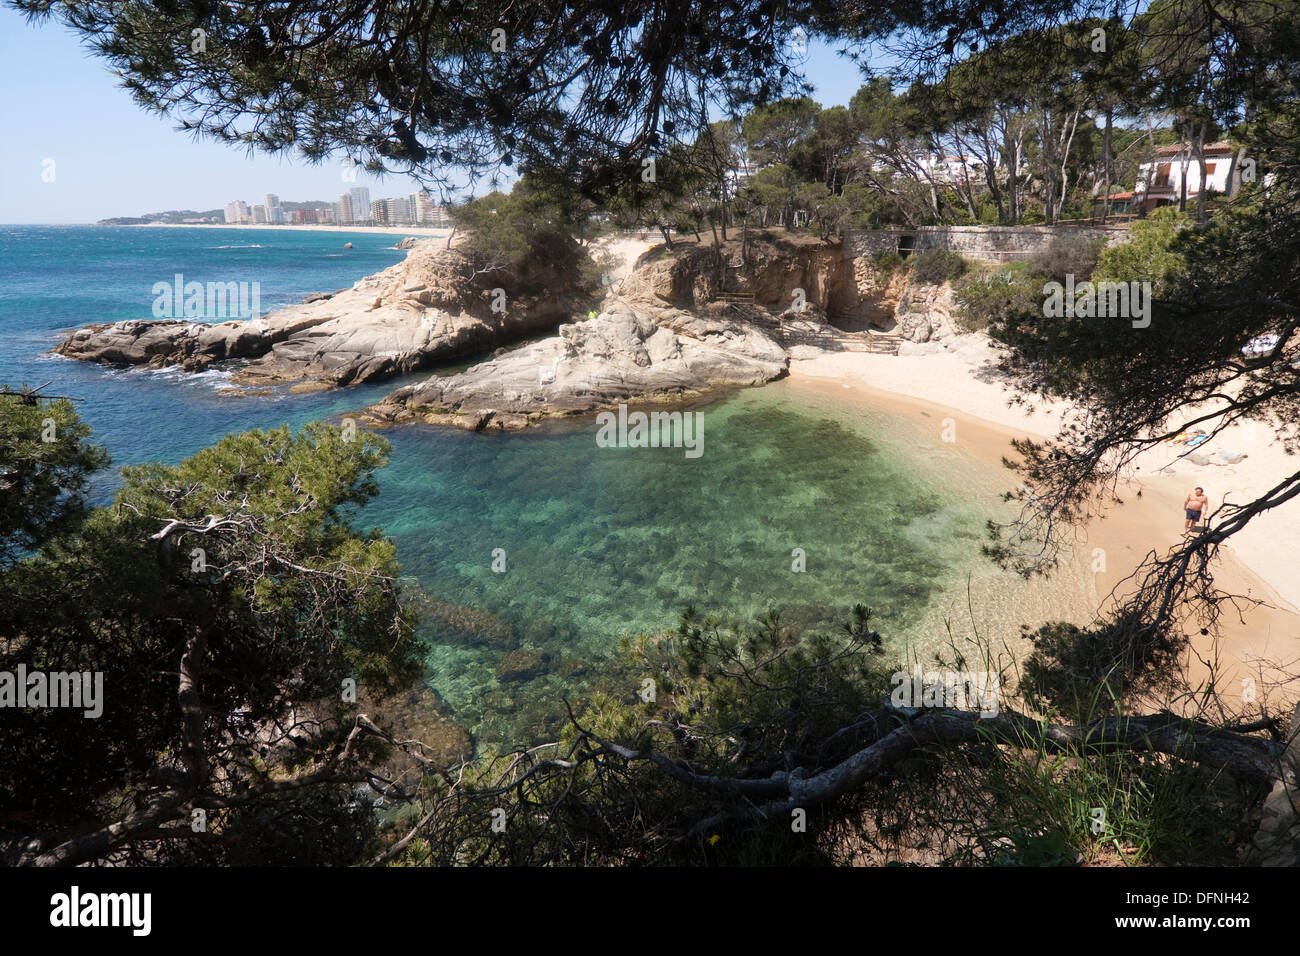 Cala Sa Cova High Resolution Stock Photography And Images Alamy